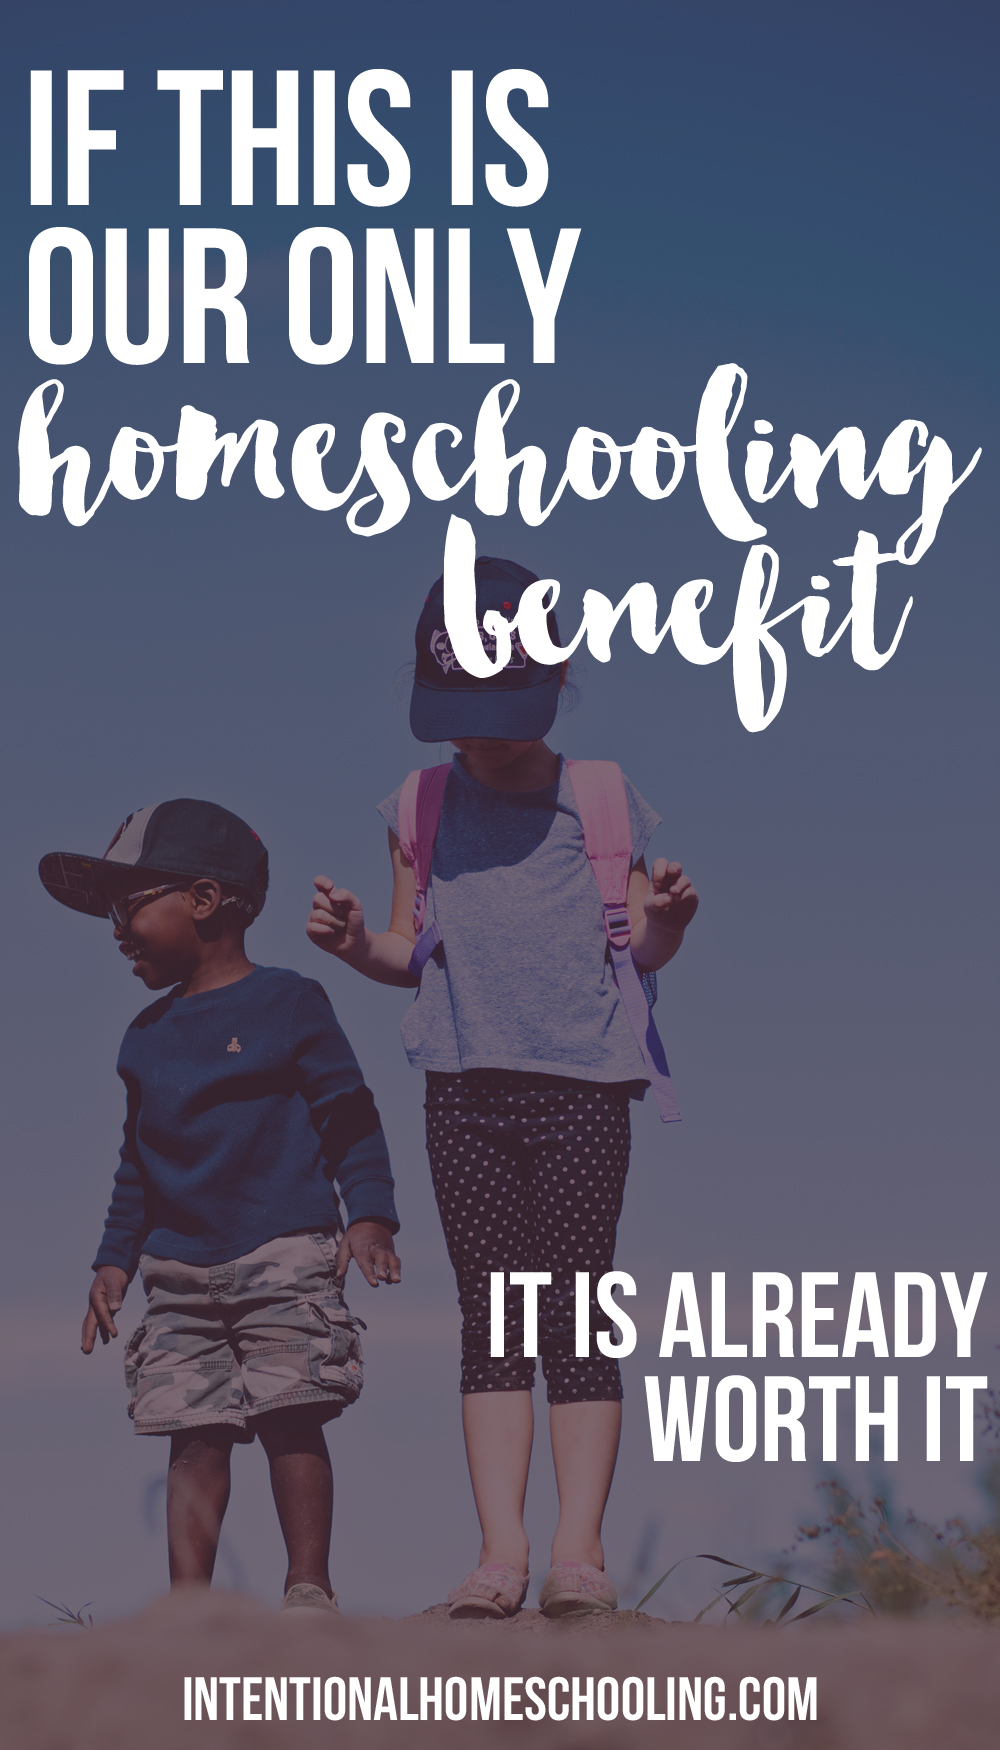 If this is the only benefit we see from homeschooling it is worth it already.